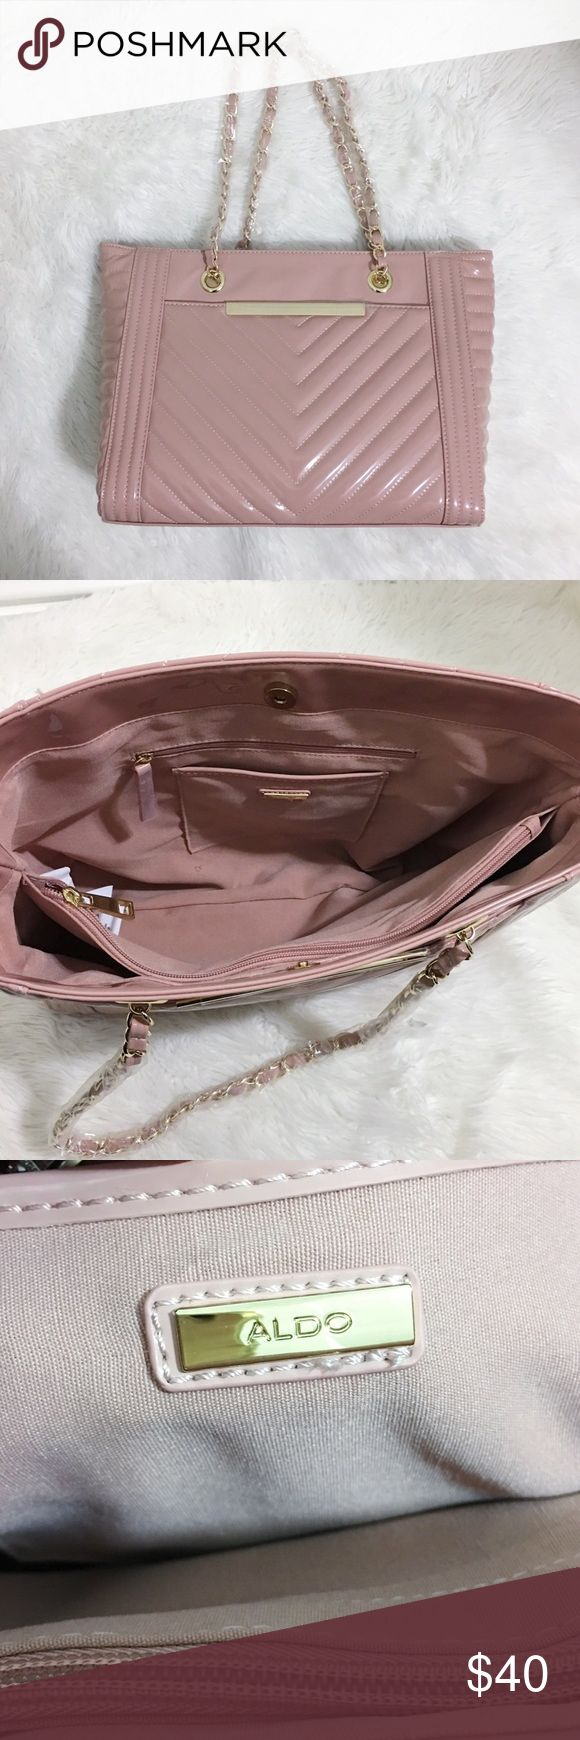 "NEW Aldo Tote Bag Beautiful blush pink color with gold chain. Faux leather material on the outside. Has a magnetic snap closure. Measurements are: 11.25"" height/13.75"" width Aldo Bags Totes"